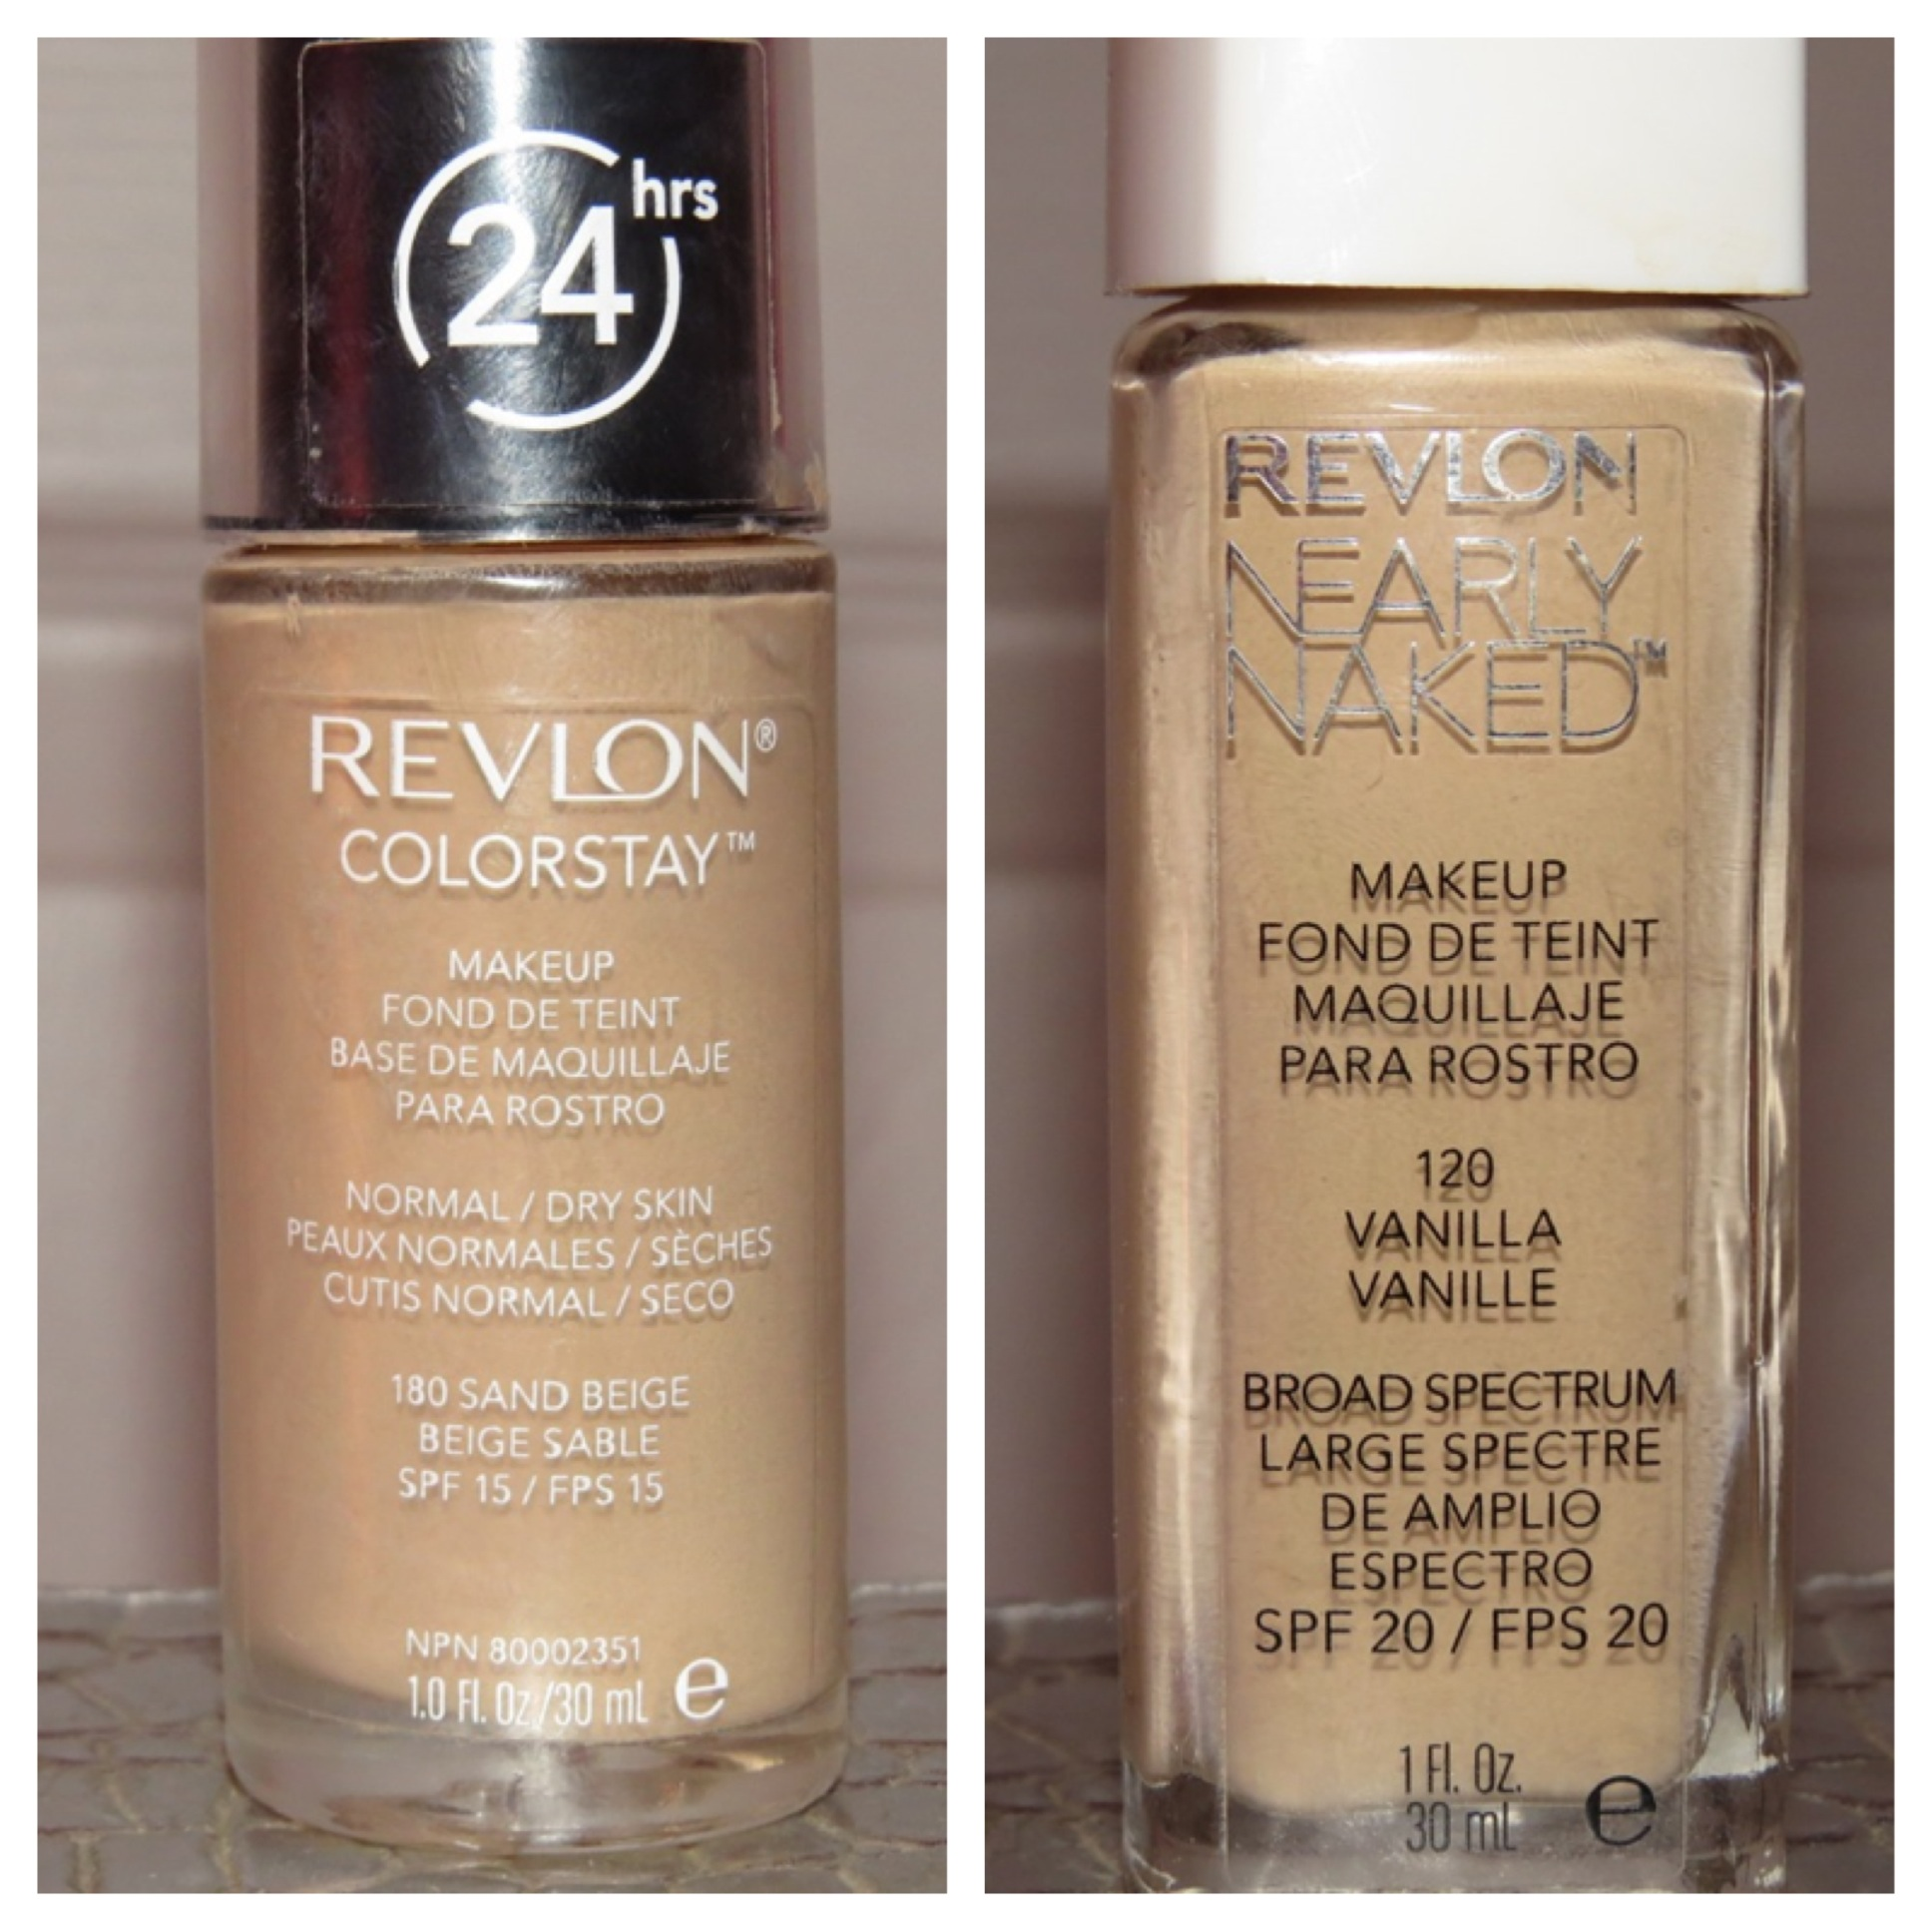 Revlon colorstay 24 hour foundation color chart revlon health revlon colorstay foundation review thedaintydaisies hd image of nearly naked thedaintydaisies nvjuhfo Choice Image